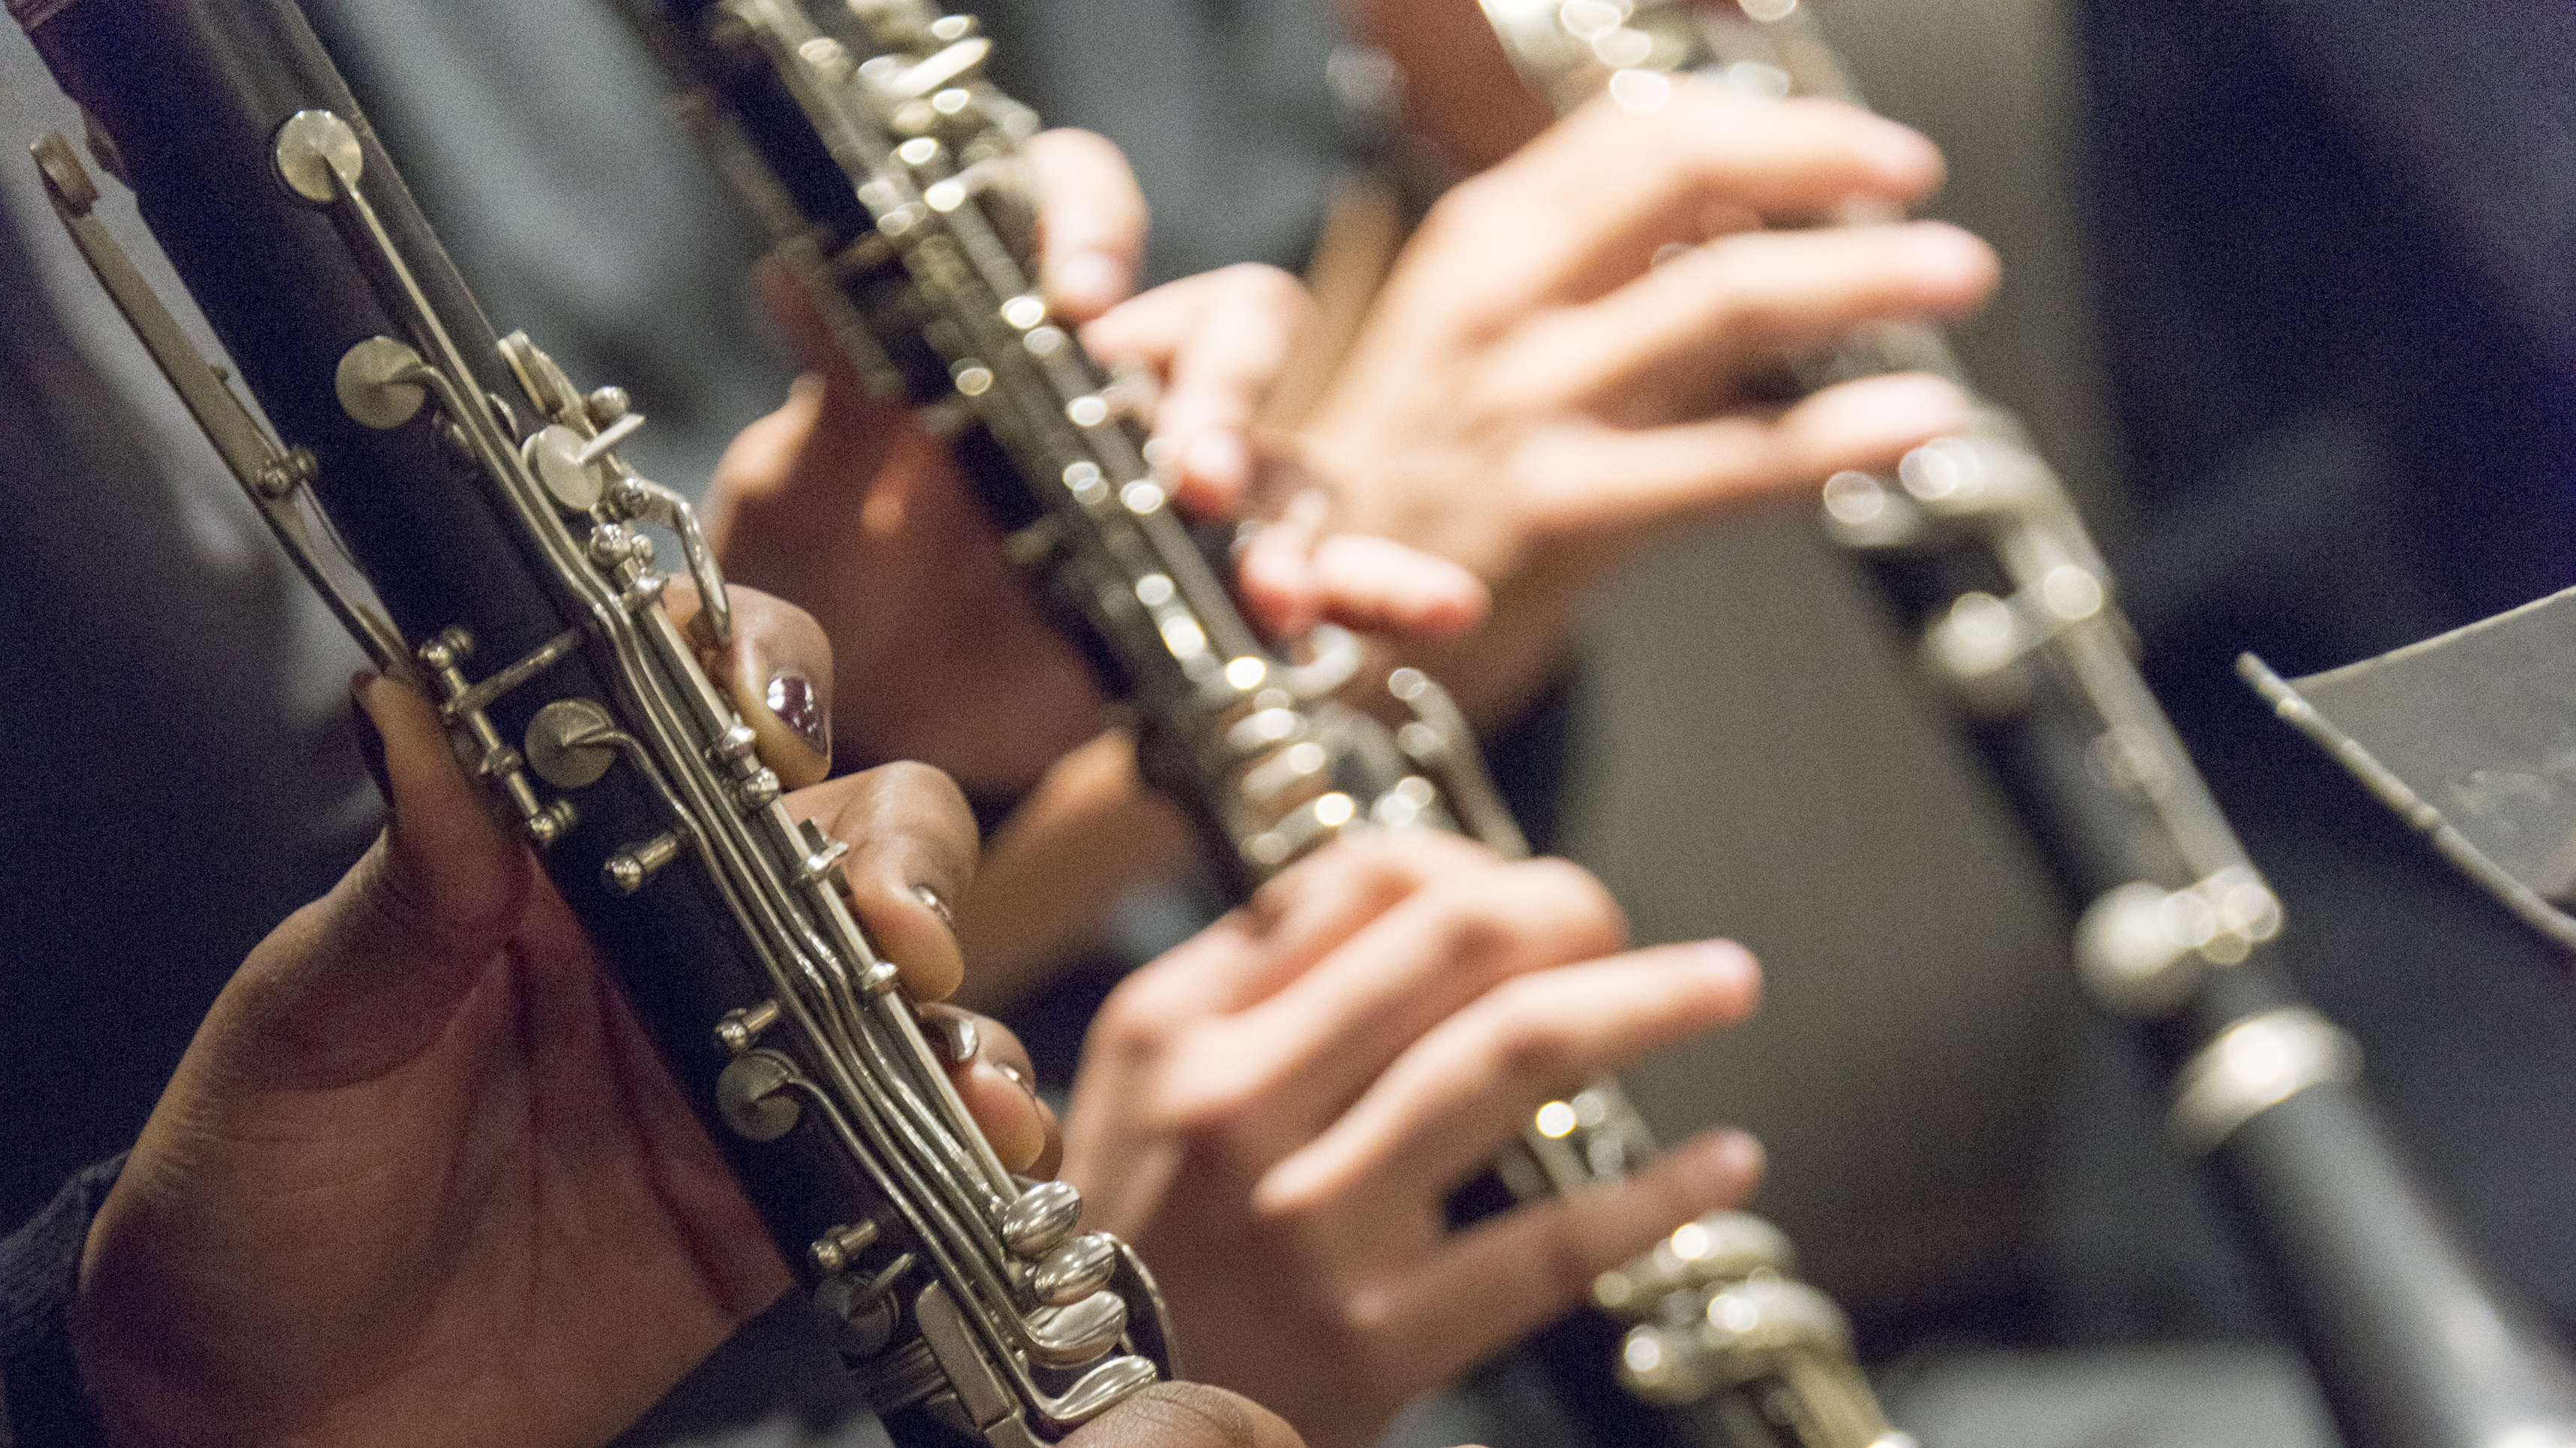 Clarinetist discovers ex-girlfriend faked rejection letter from his dream school